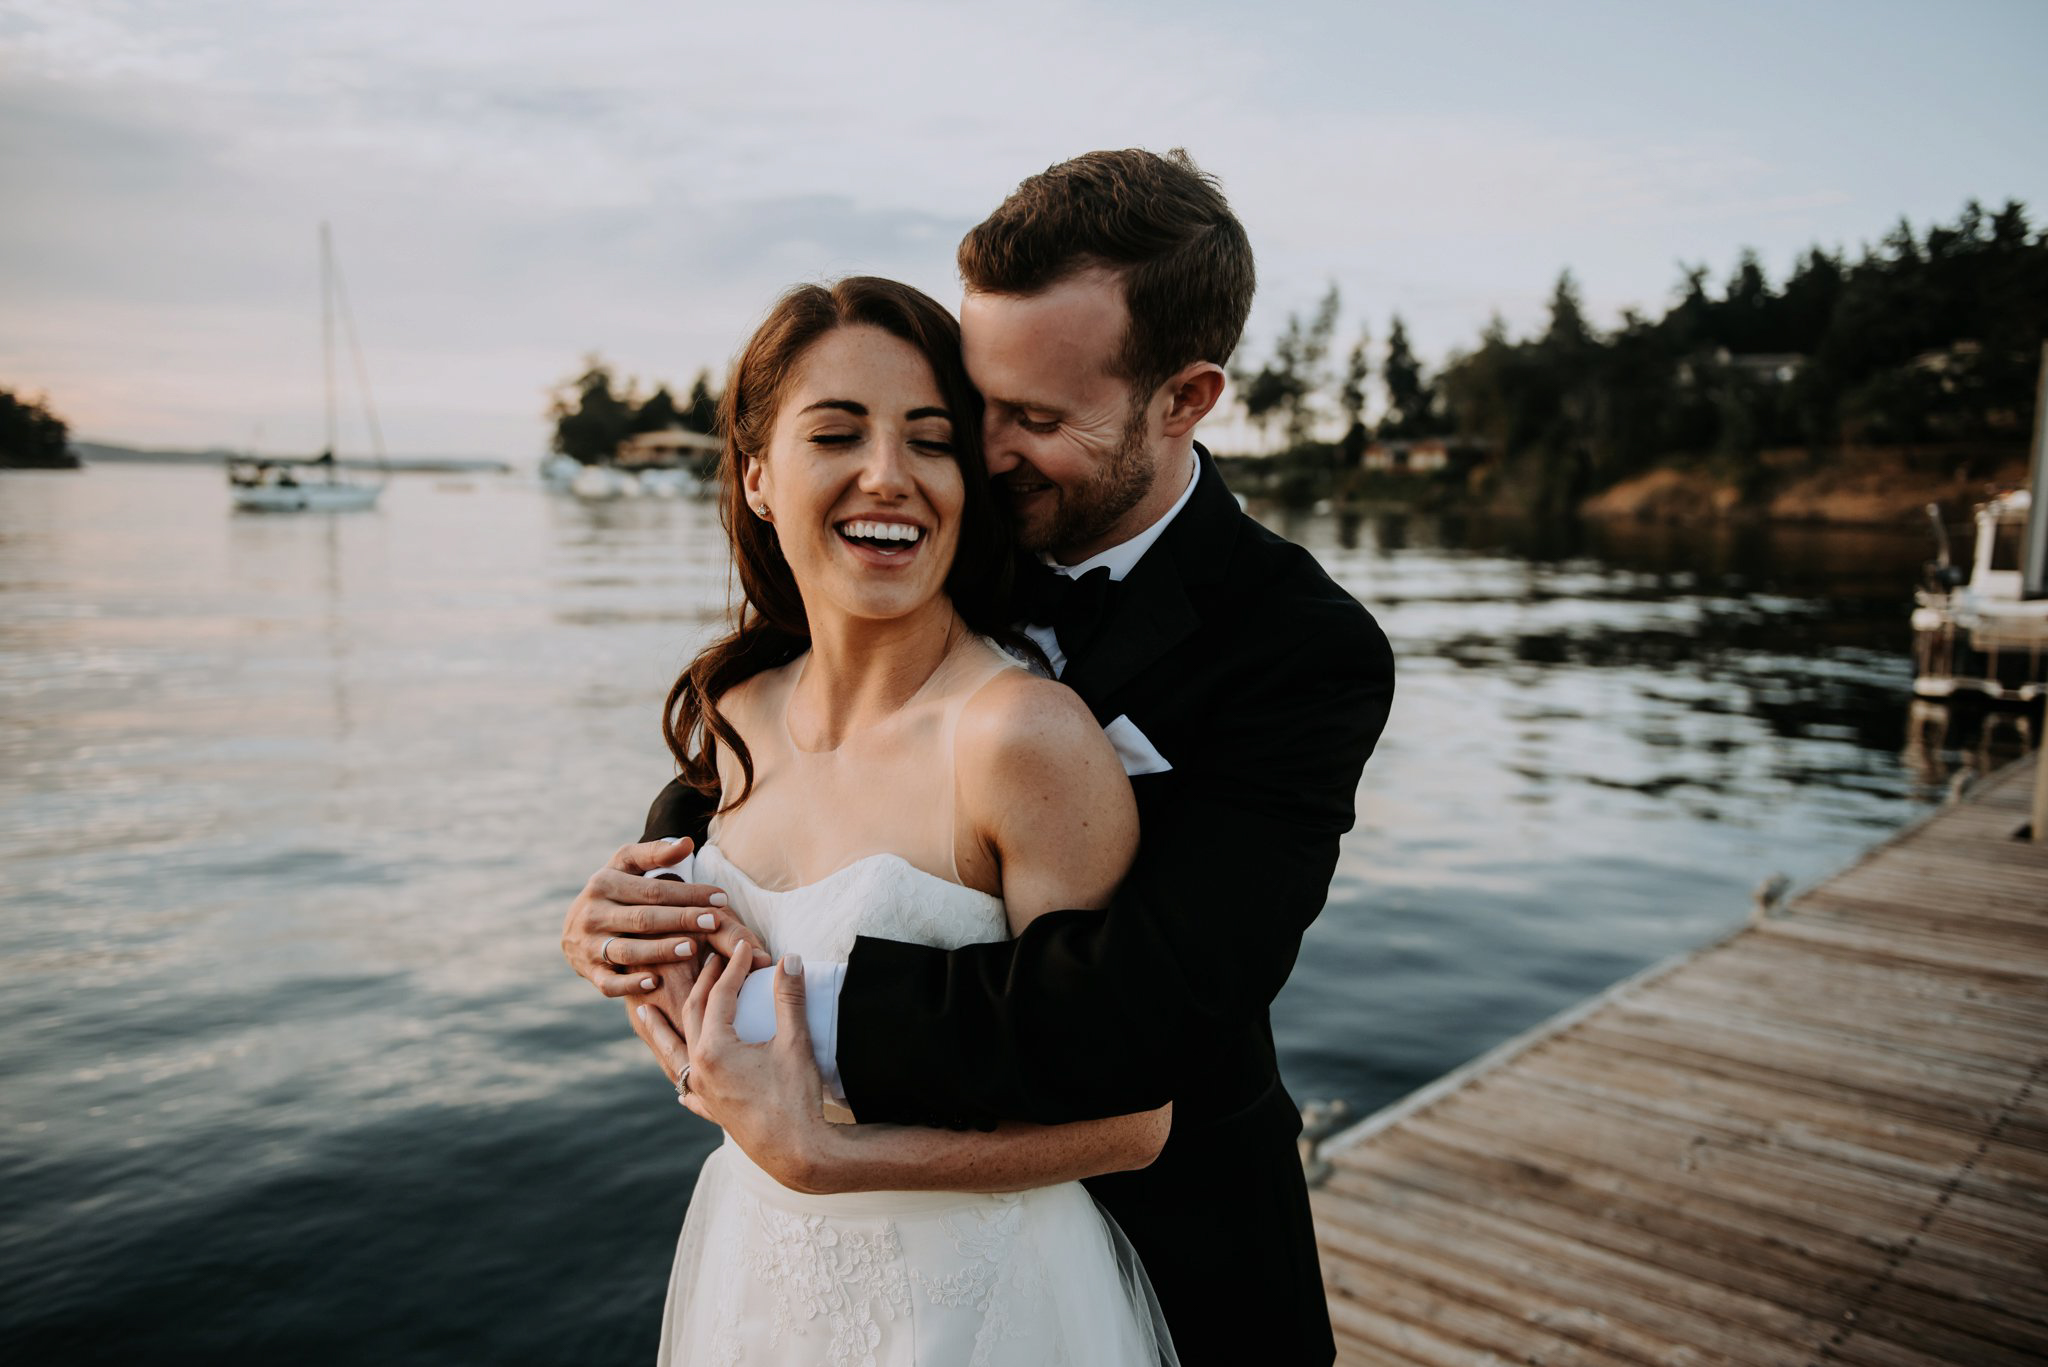 roche-harbor-resort-sand-juan-island-wedding-seattle-wedding-photograher-caitlyn-nikula-144.jpg